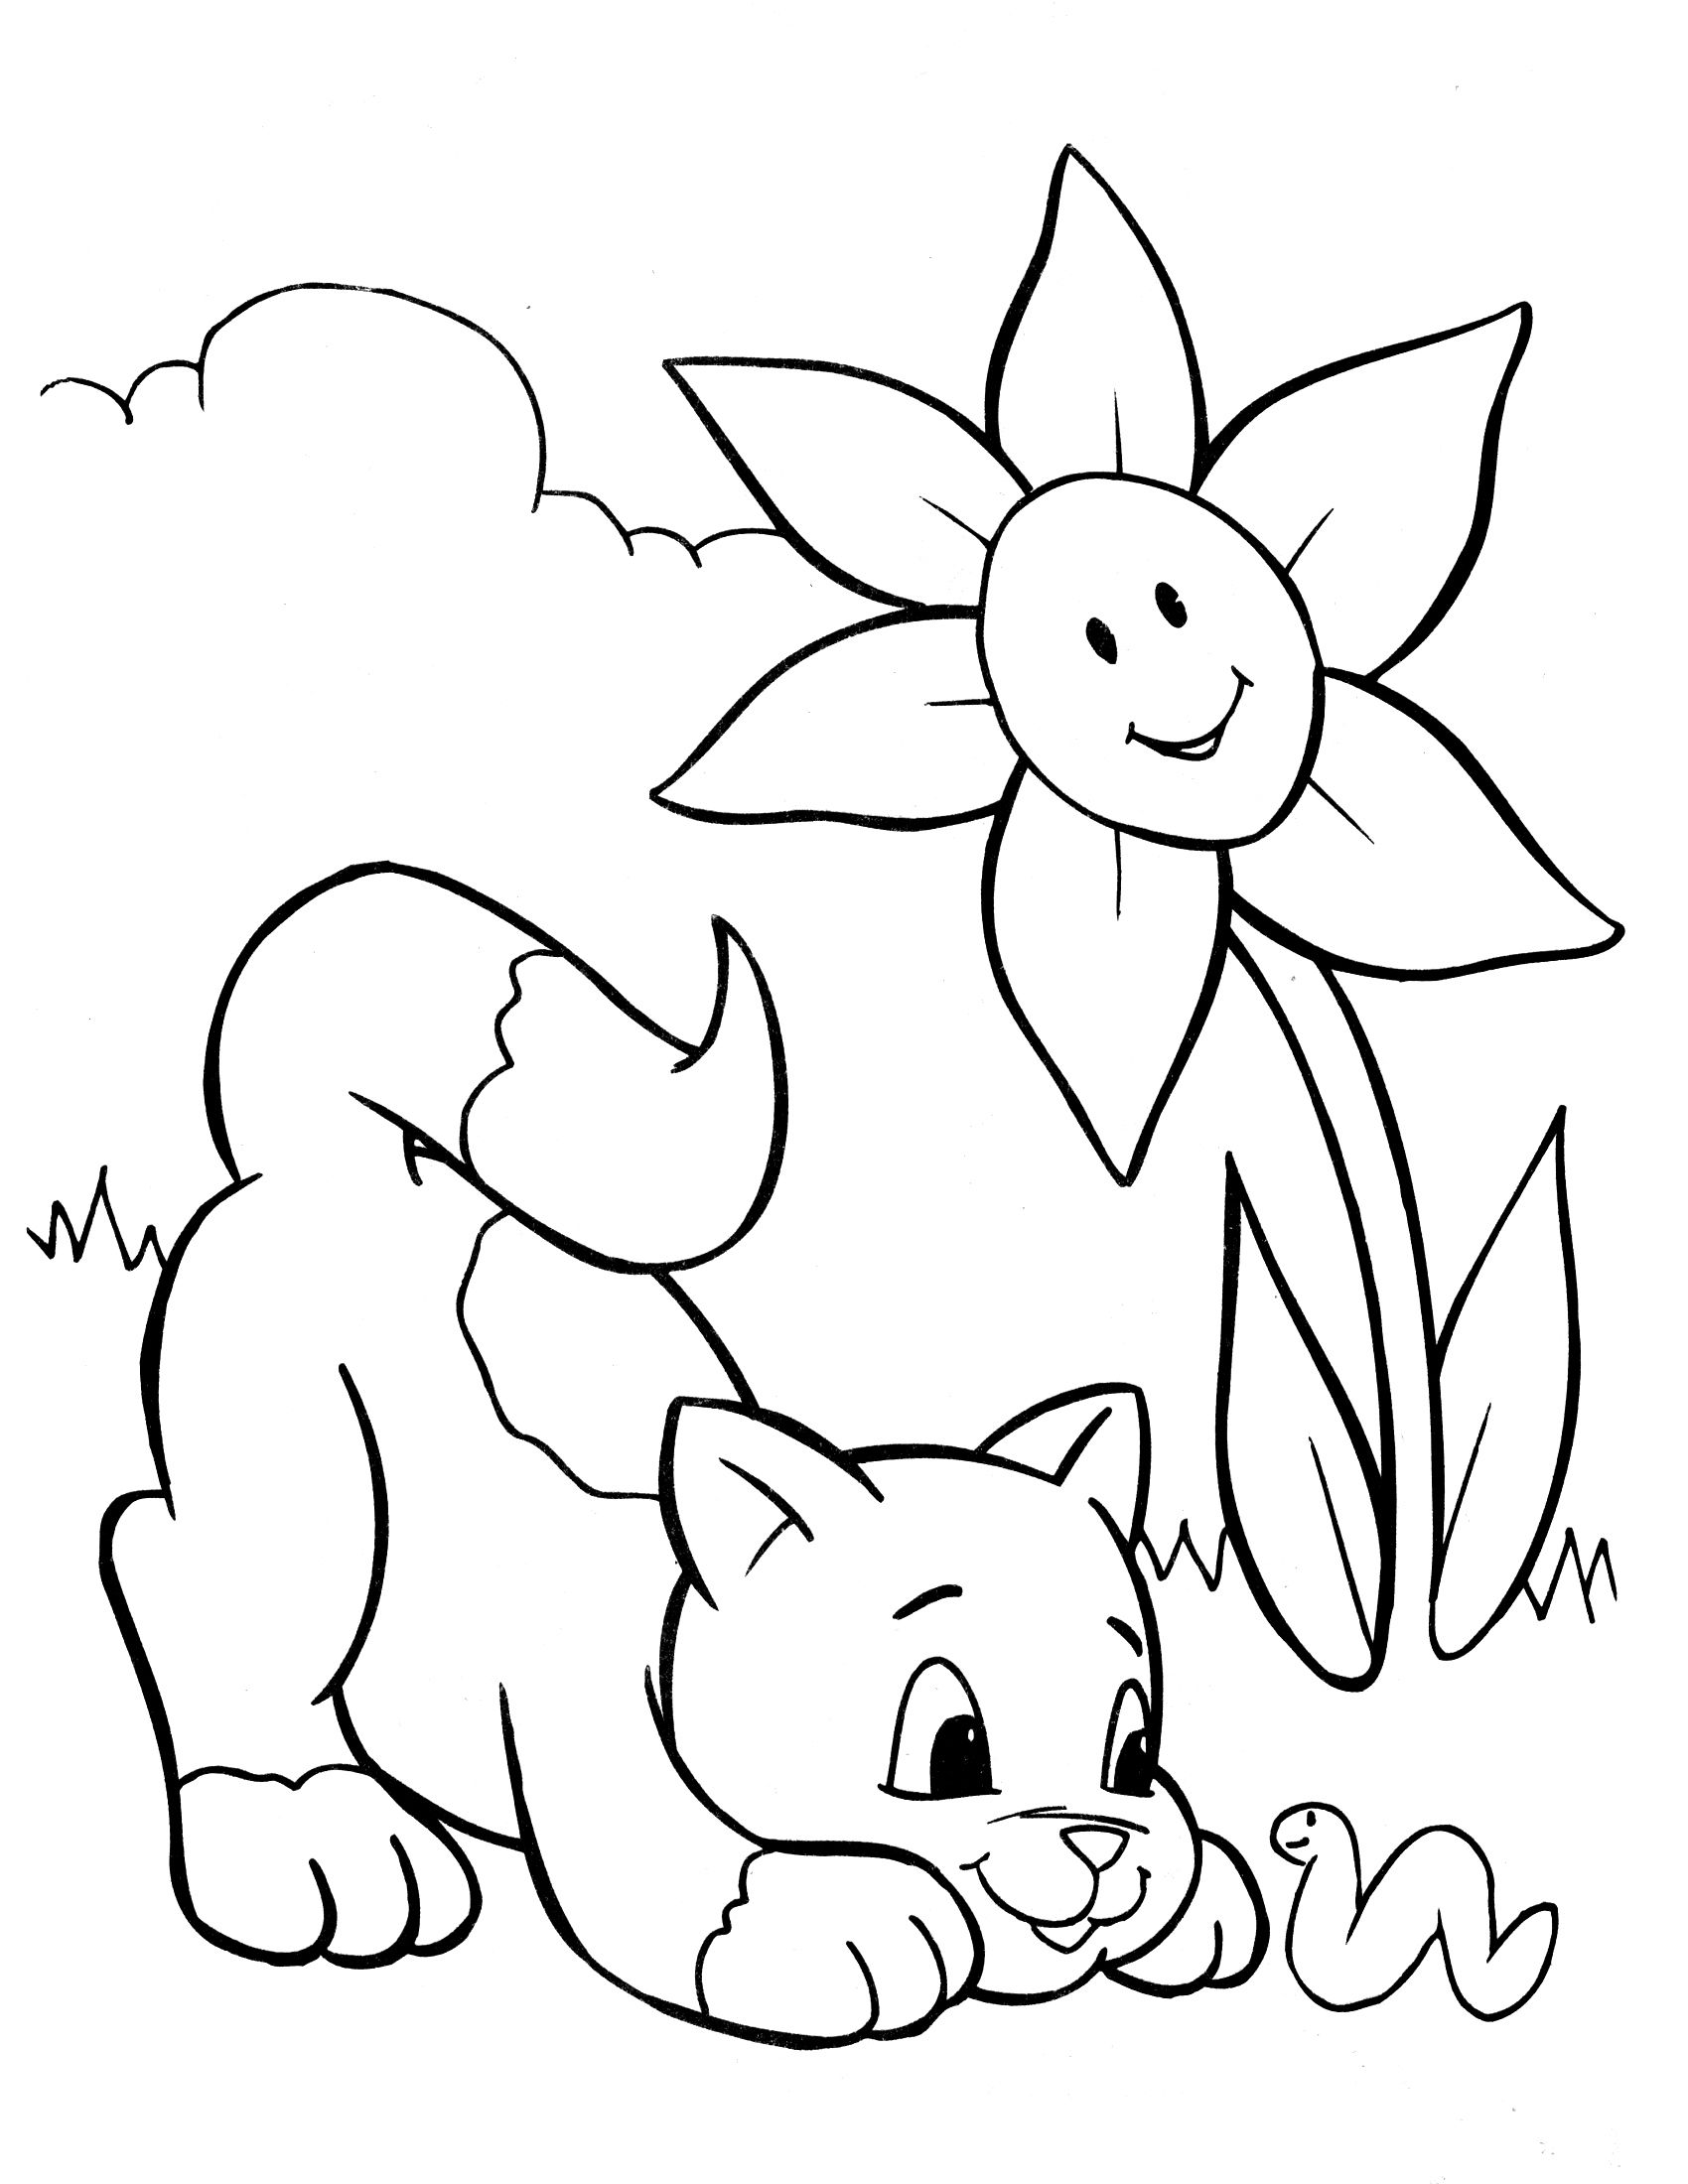 Crayola 12 Coloring Pages Winter Easy Coloring Pages Kids Printable Coloring Pages